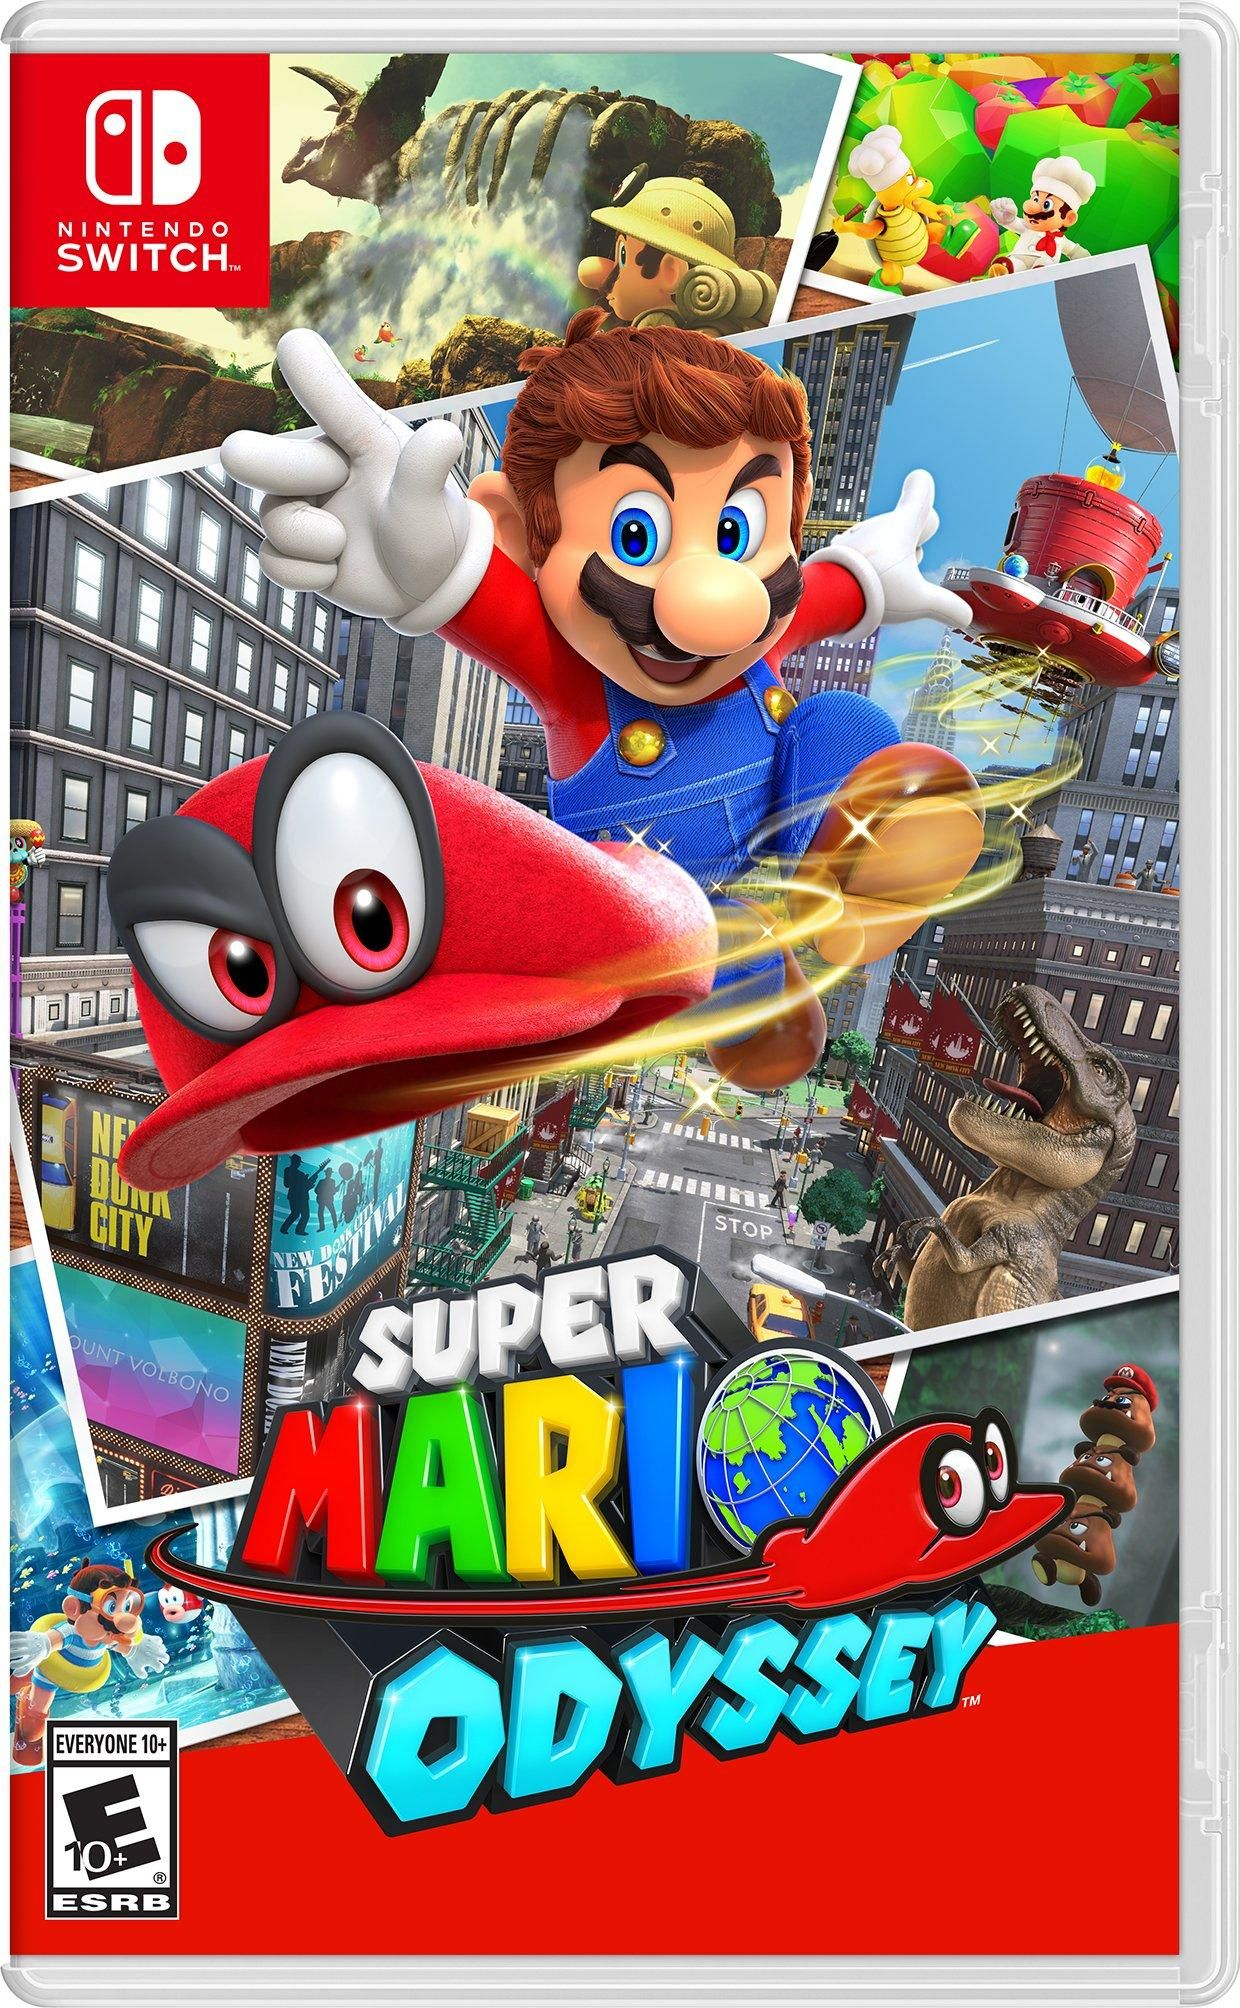 Pin By Spencer On 18th Birthday Nintendo Switch Super Mario Nintendo Switch Games Super Mario